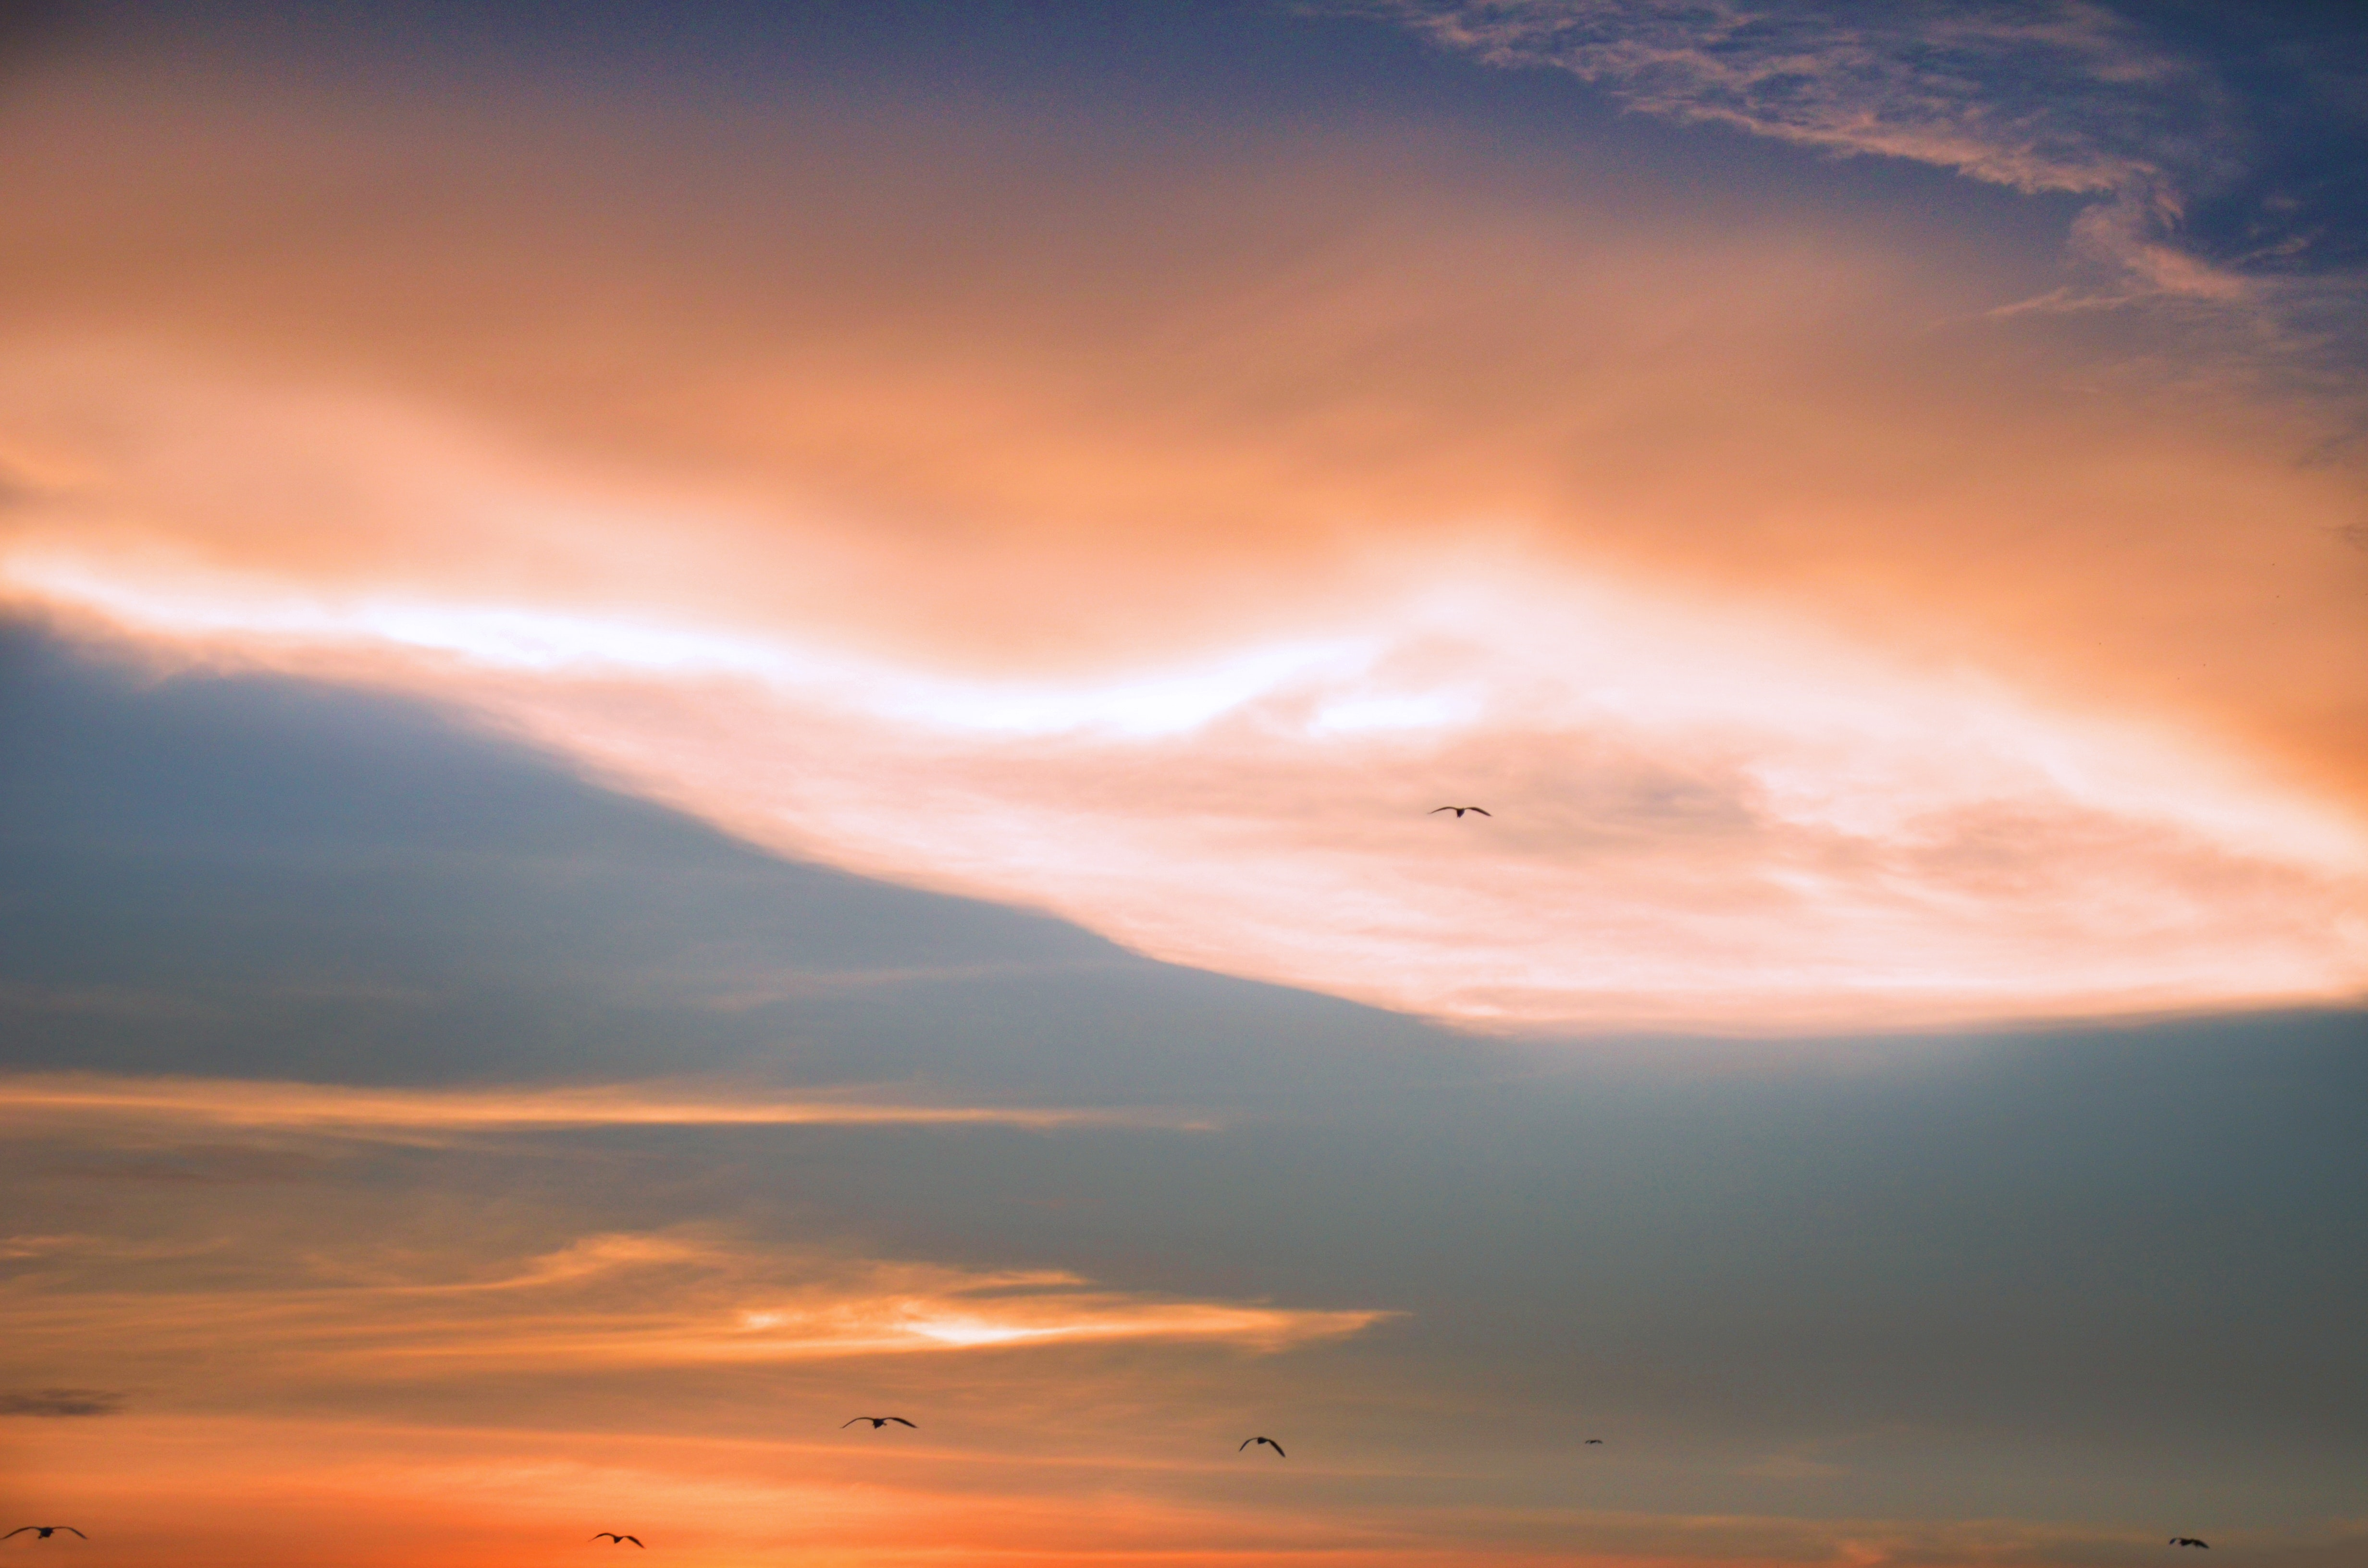 Scenic View of Sky During Dawn, Nature, Sunset, Sunrise, Sky, HQ Photo